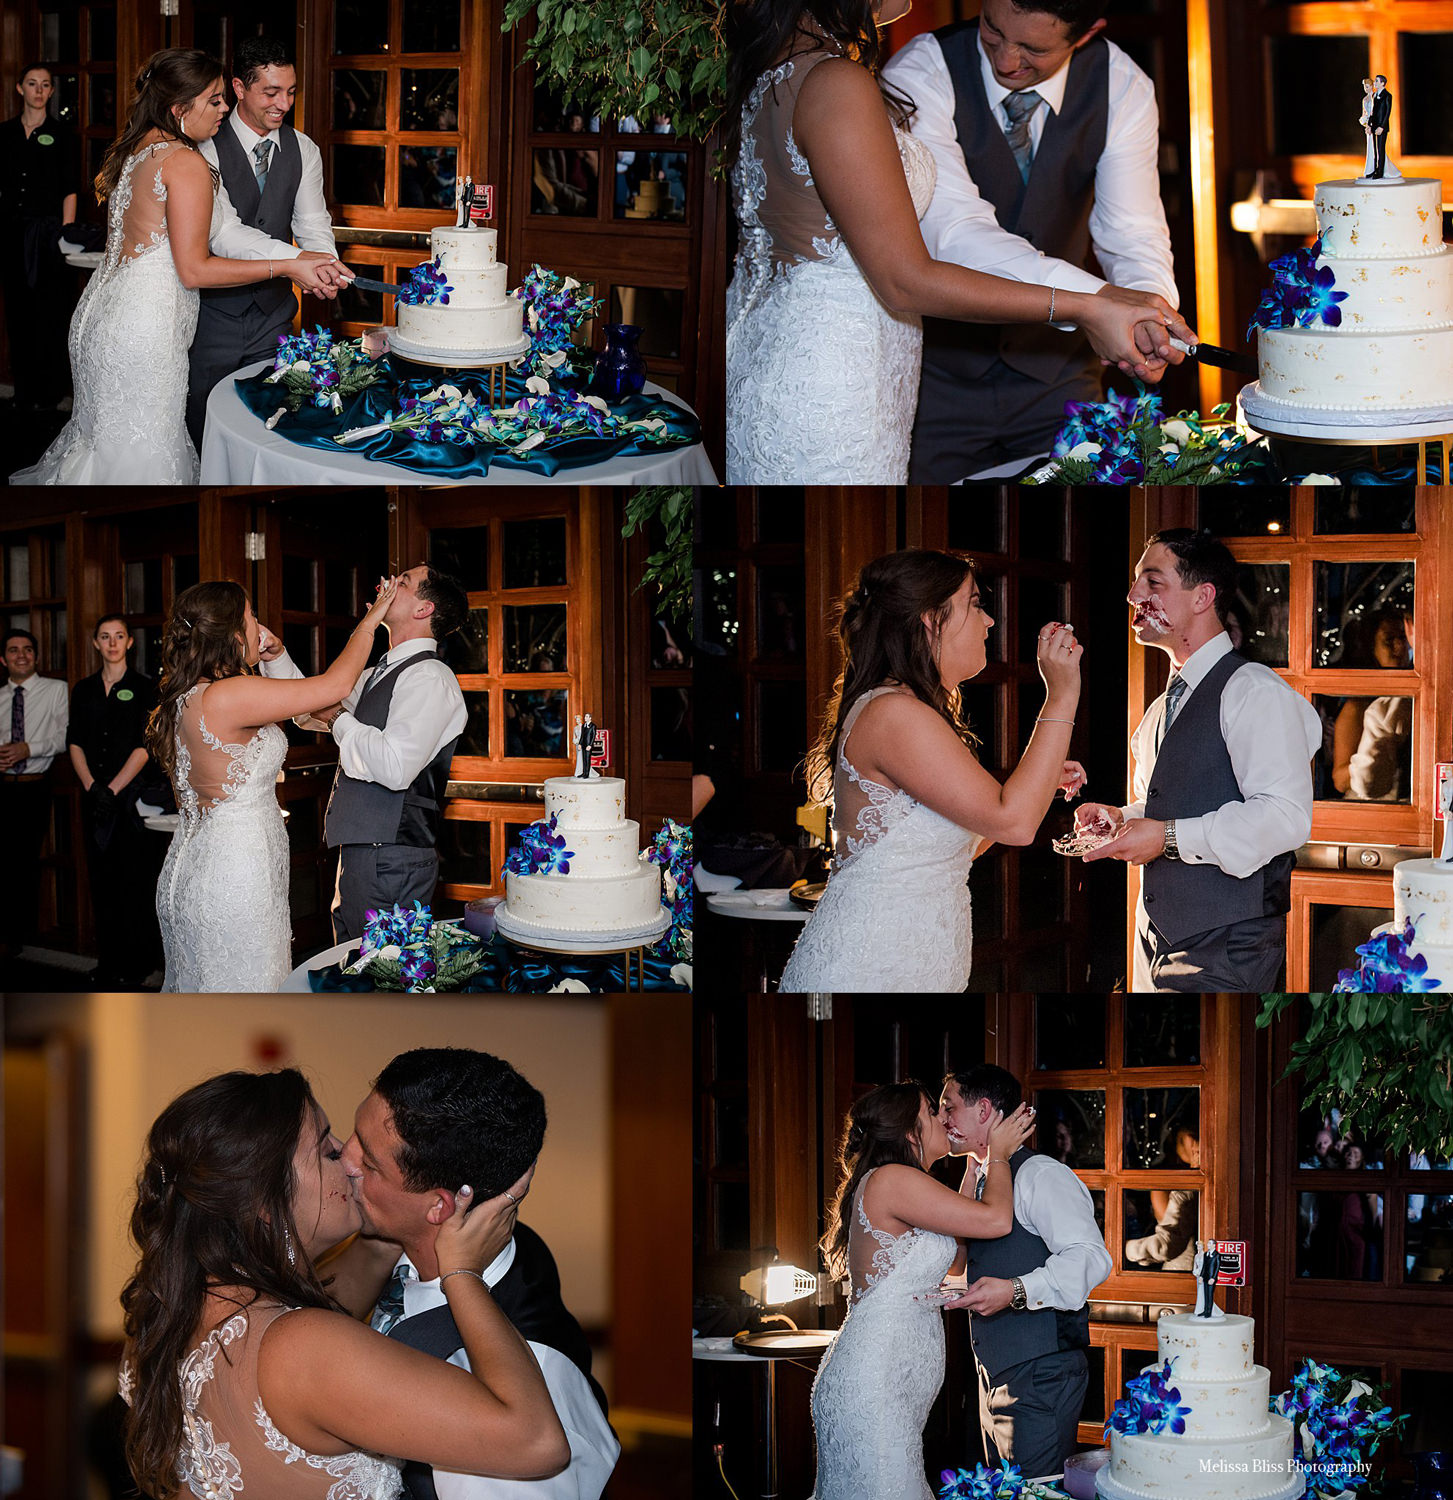 cake-cutting-photos-MOCA_virginia-beach-wedding-reception-melissa-bliss-photography-destination-photographer.jpg